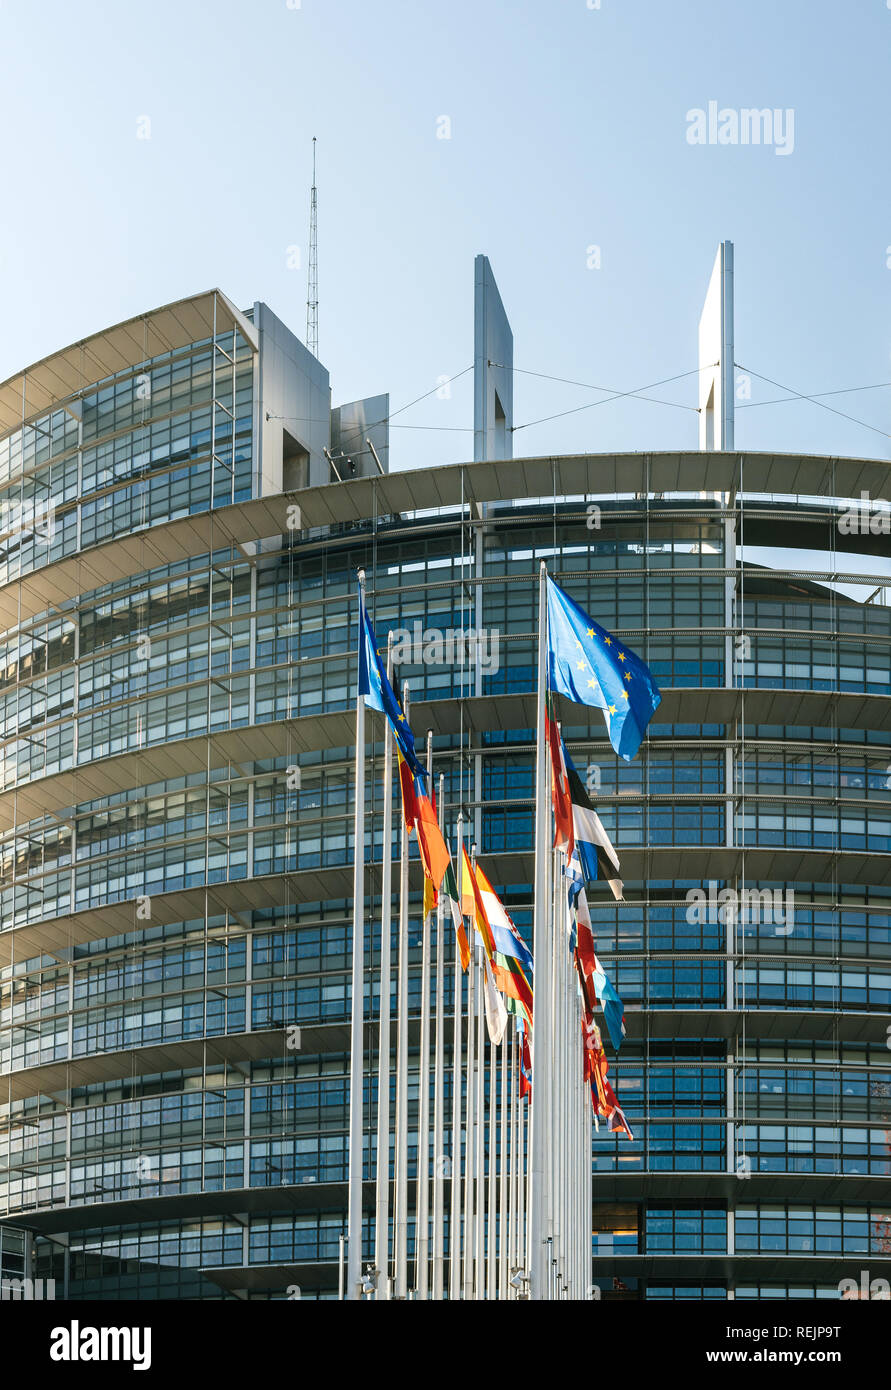 Facade of the European Parliament building in Strasbourg, France with all European Union Member States flags waving in the courtyard of the Louise Weiss building on a fine sunny spring day - Stock Image